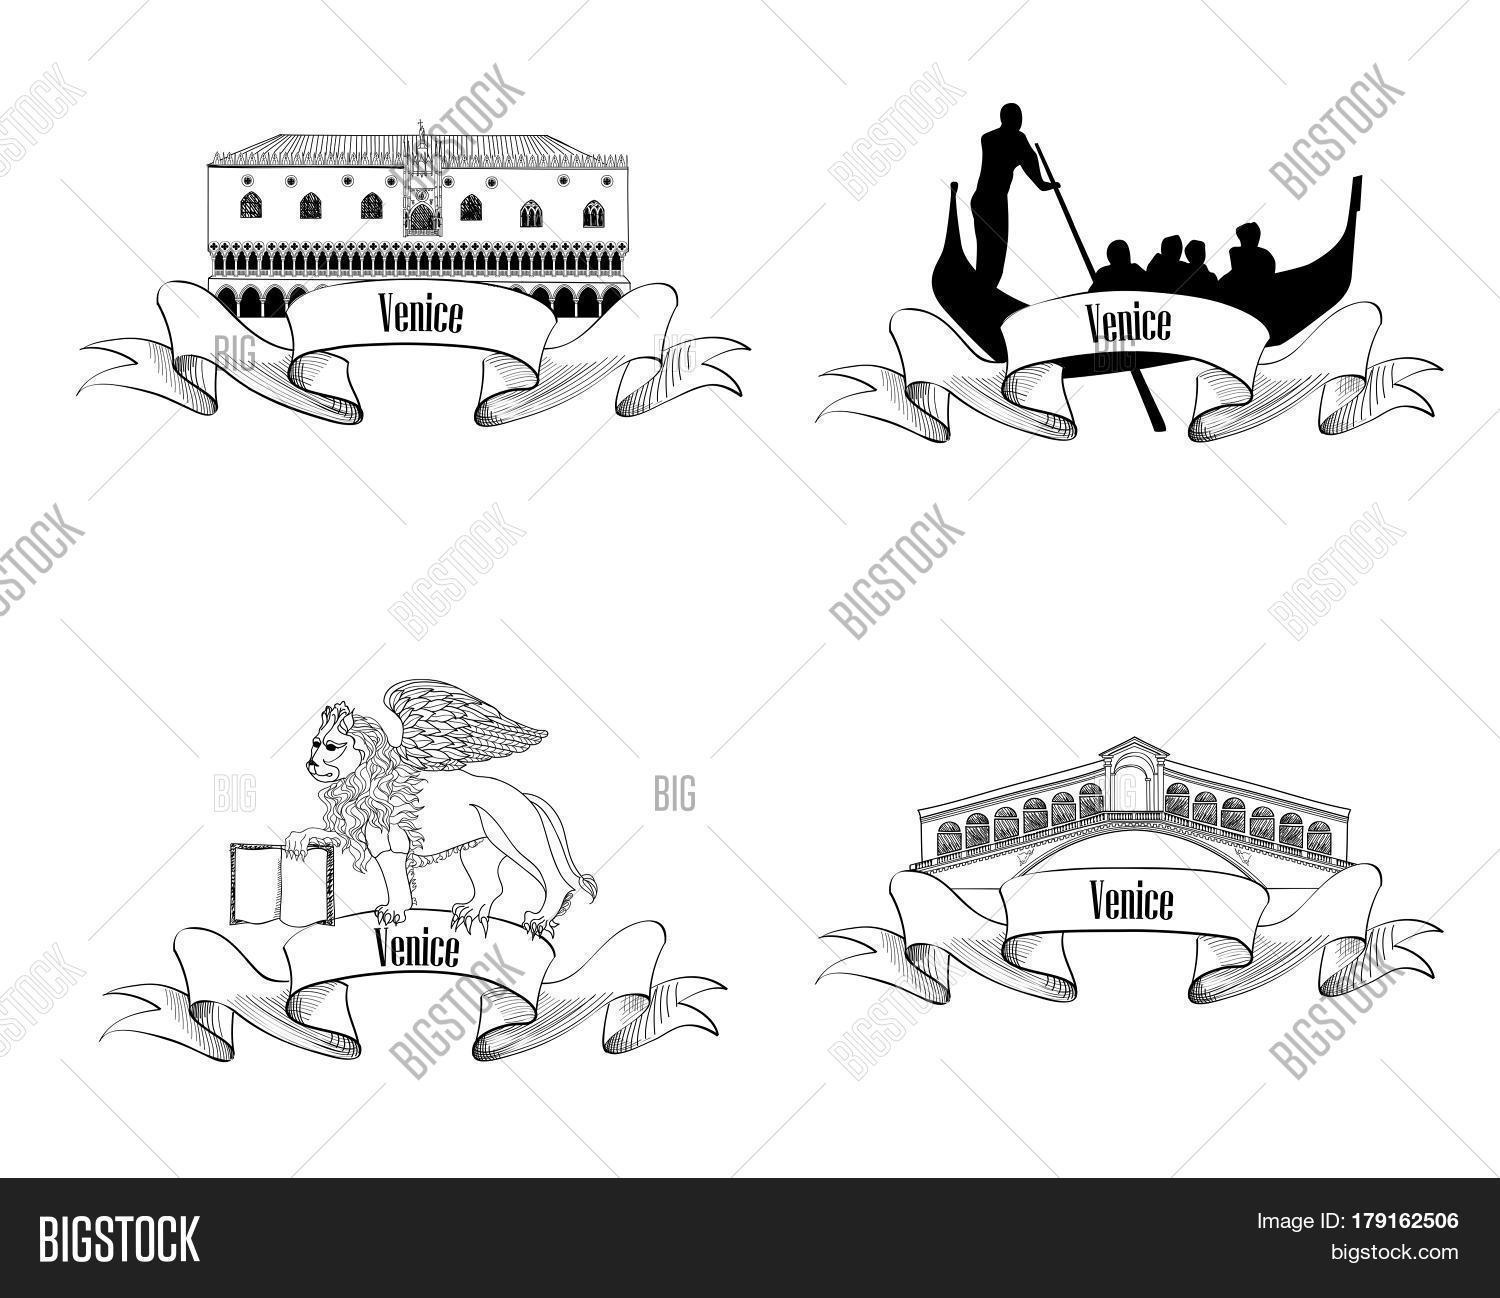 Venice Symbol Set. Gondola Rialto Vector & Photo | Bigstock